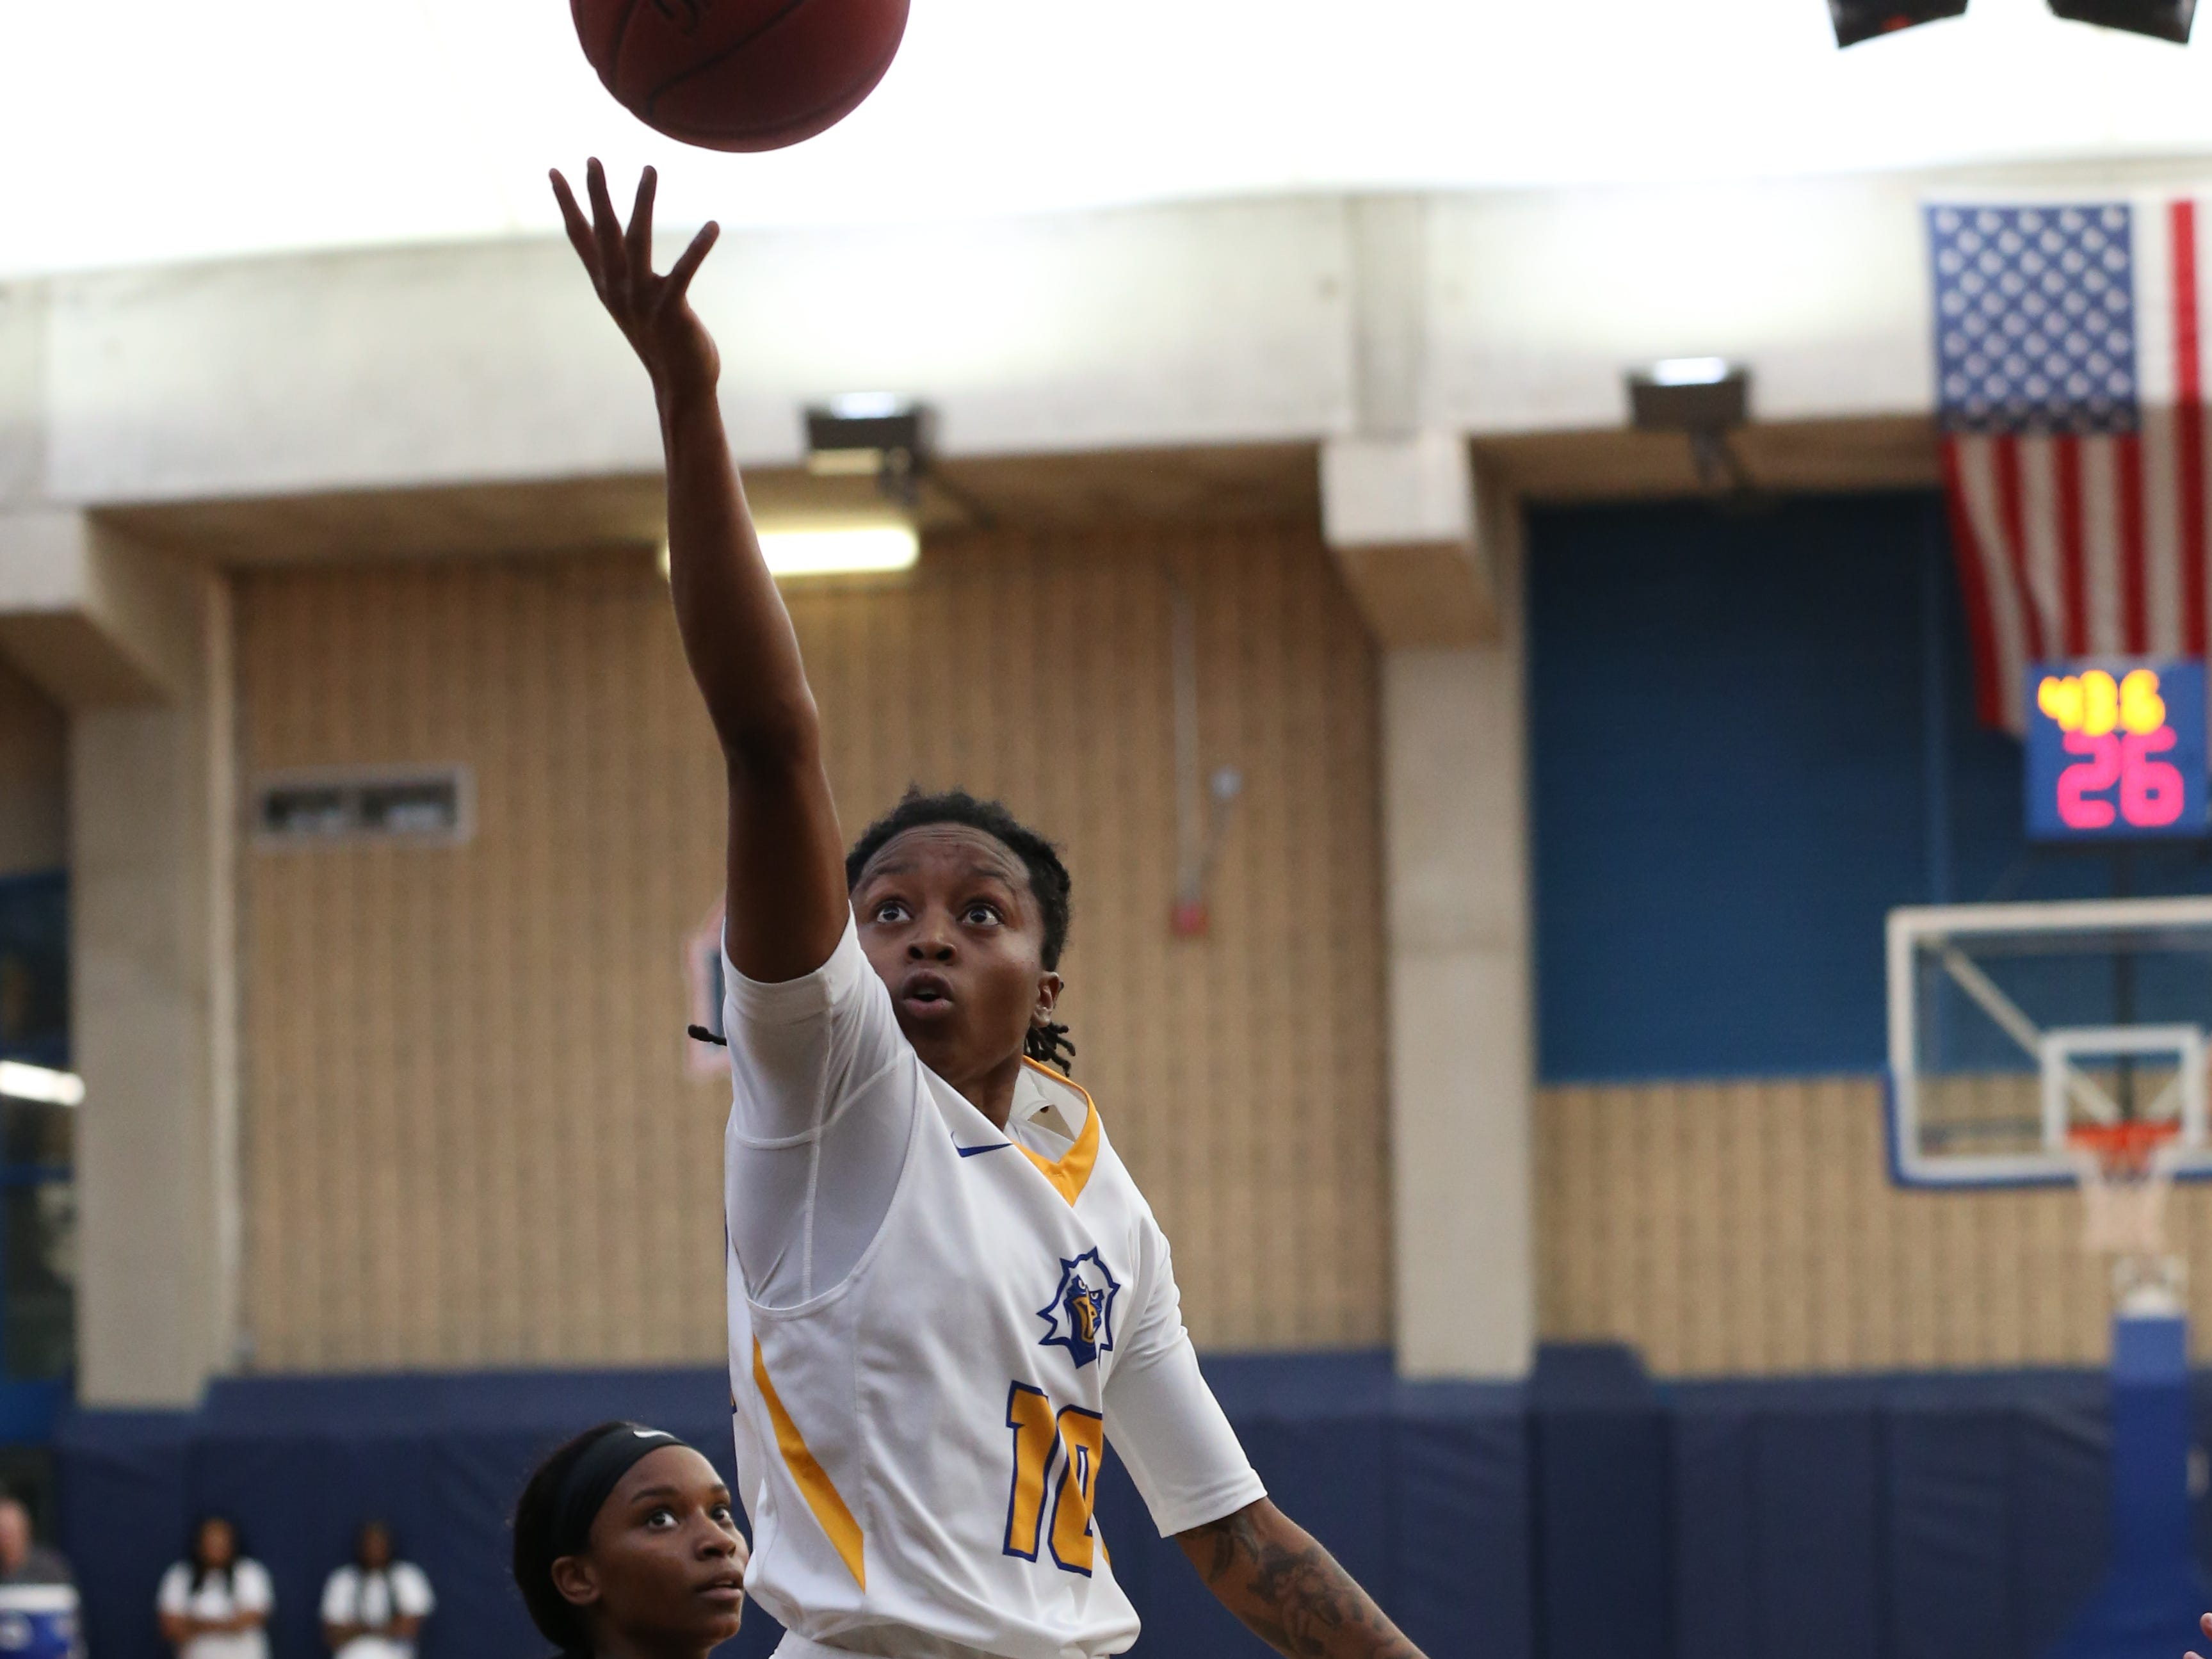 Tallahassee Community College Eagles guard Tameria Johnson (10) goes in for the layup. The Tallahassee Community College Eagles host the Gulf Coast State College Commodores in a conference match-up in the Eagledome, Saturday, Jan. 5, 2019.